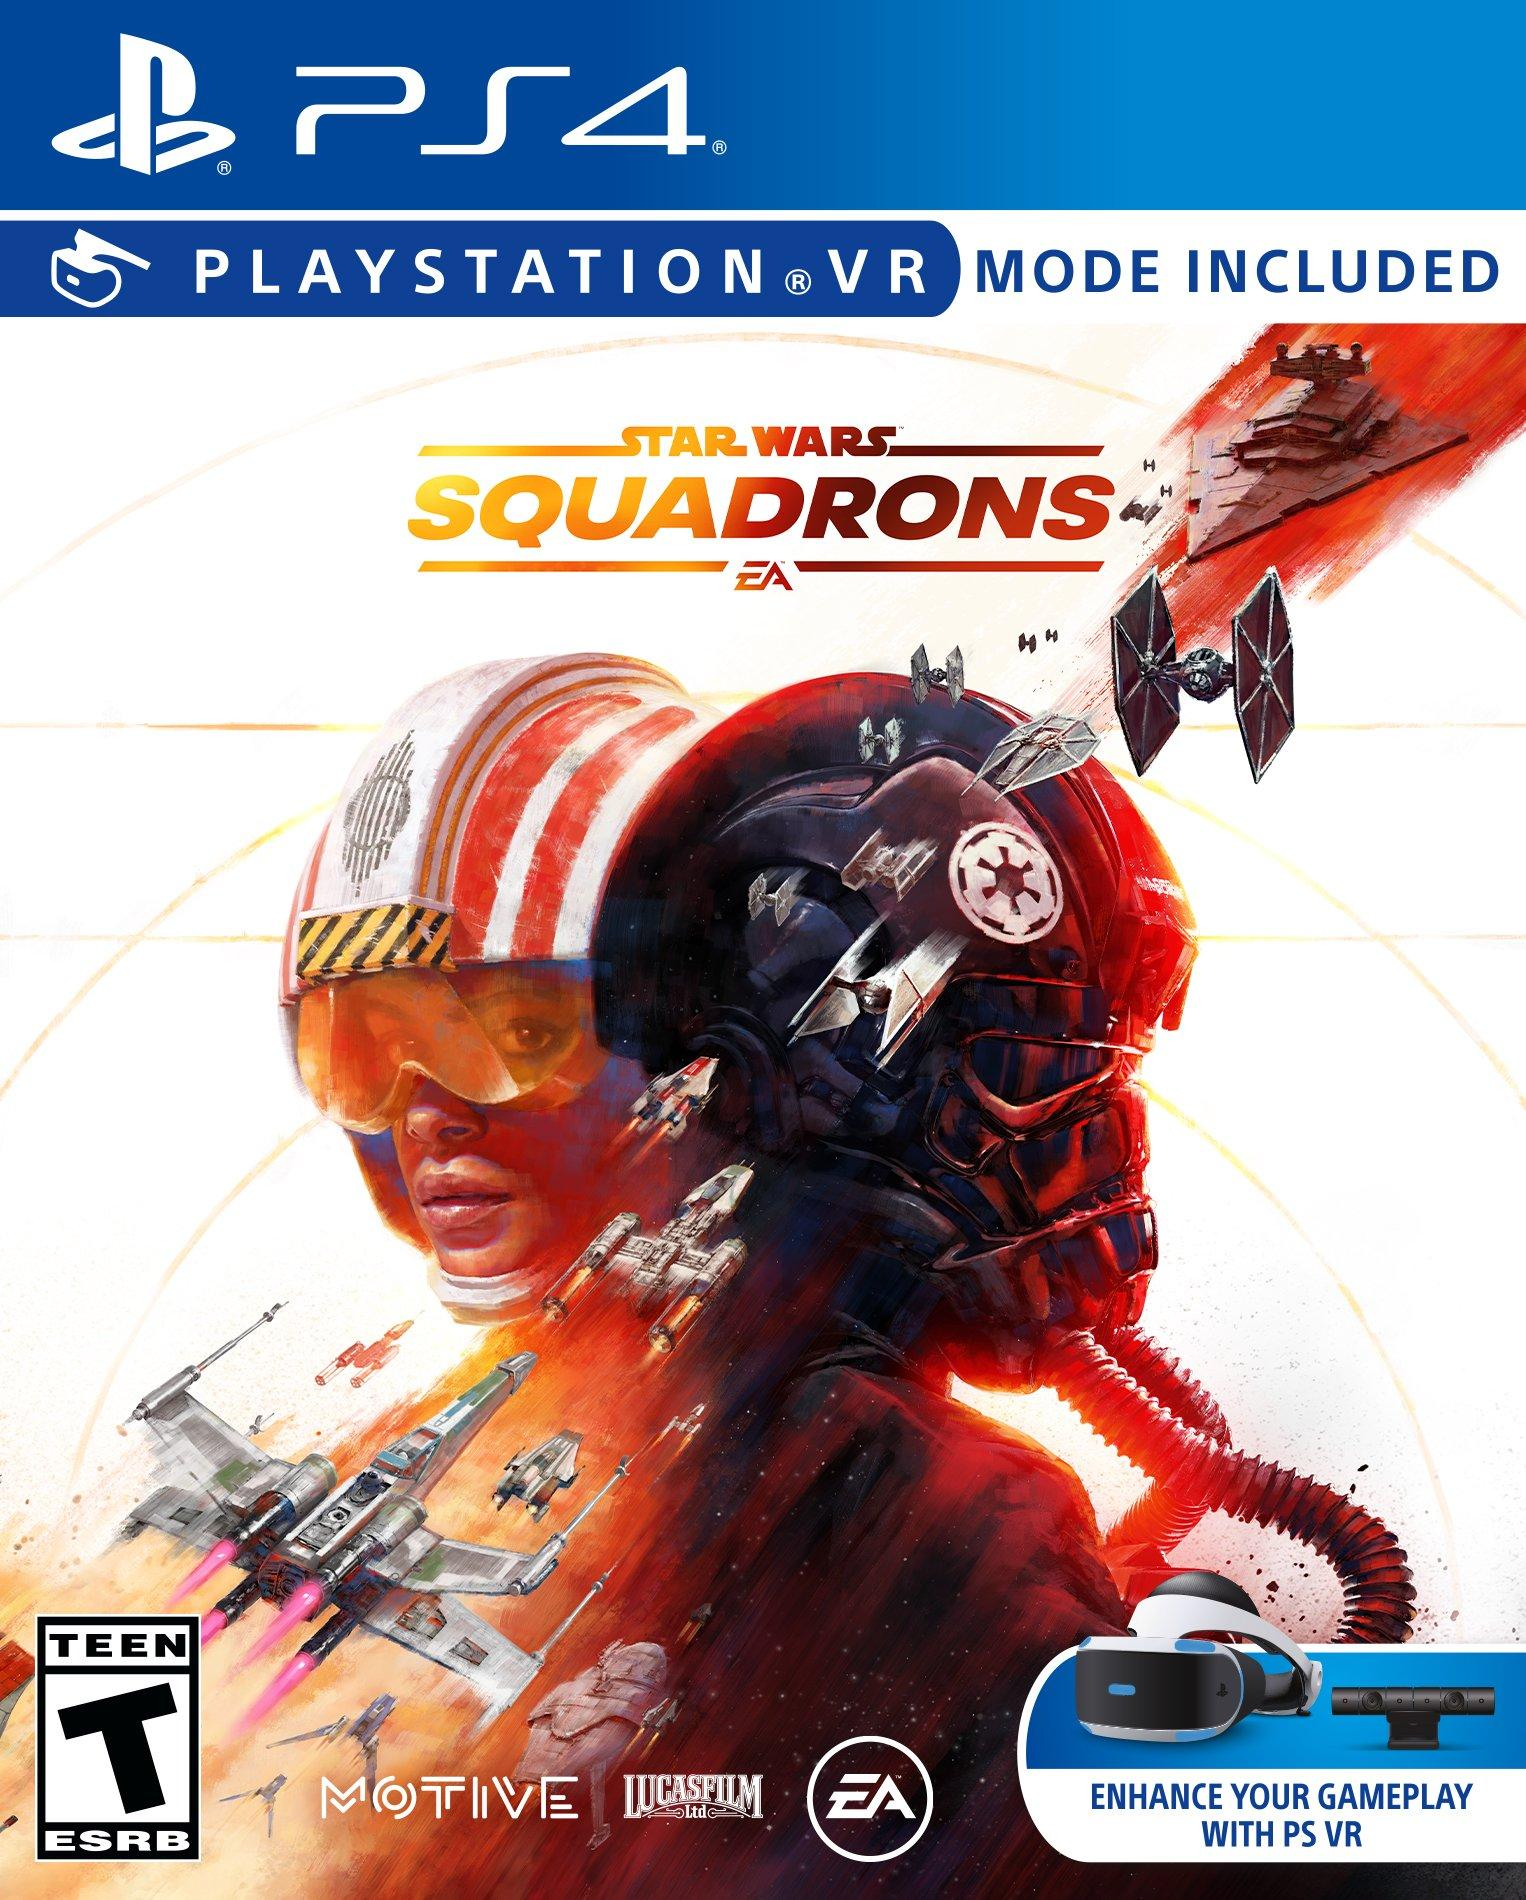 Star Wars: Squadrons | PlayStation 4 | GameStop